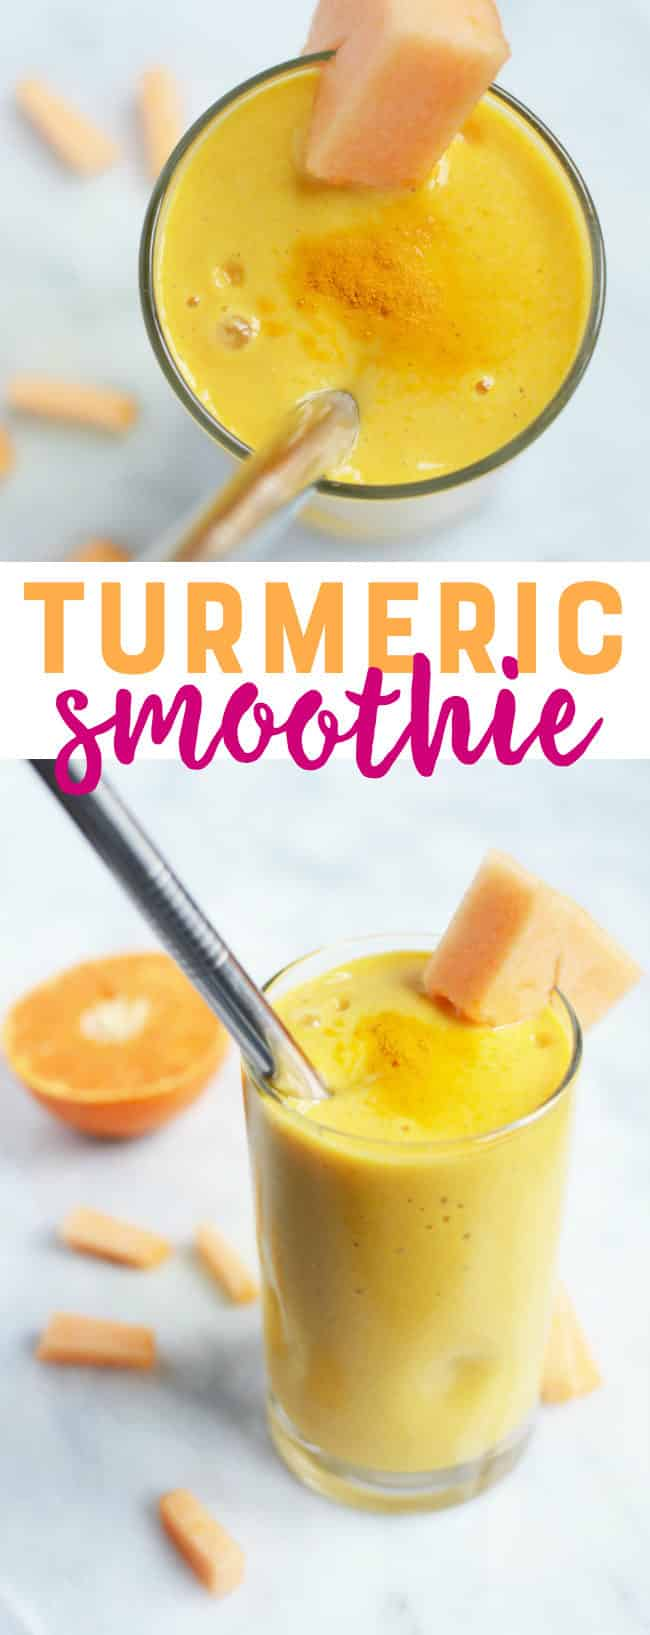 Turmeric Smoothie Recipe - This easy turmeric smoothie is tasty and nutritious.